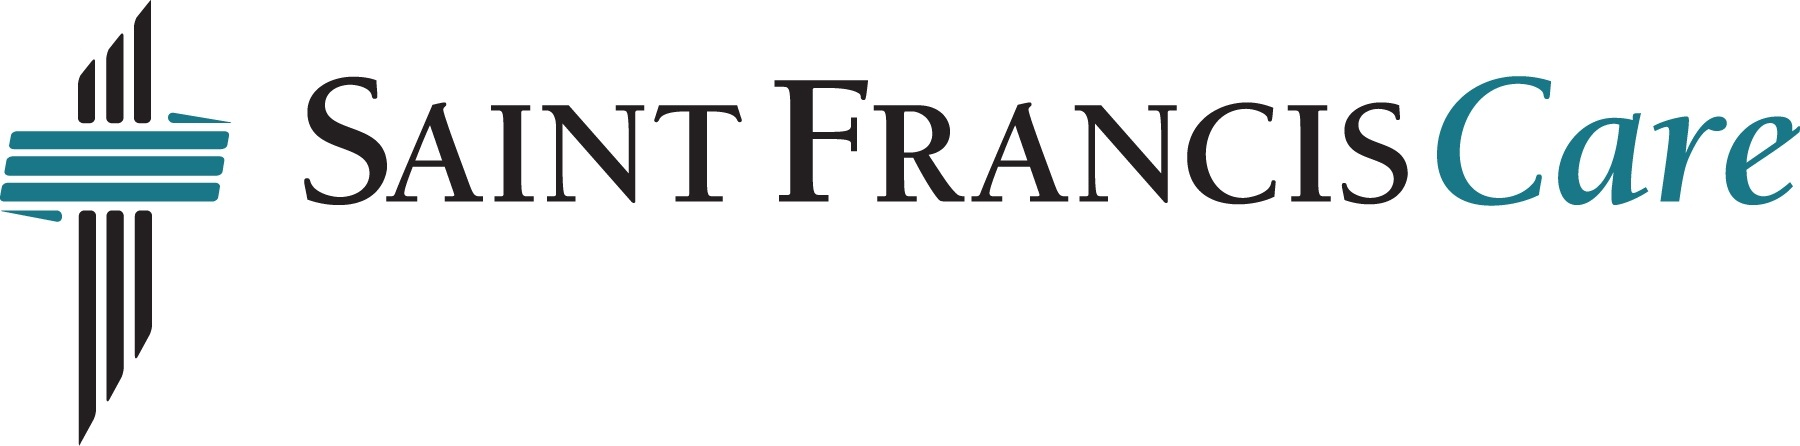 saint francis care logo